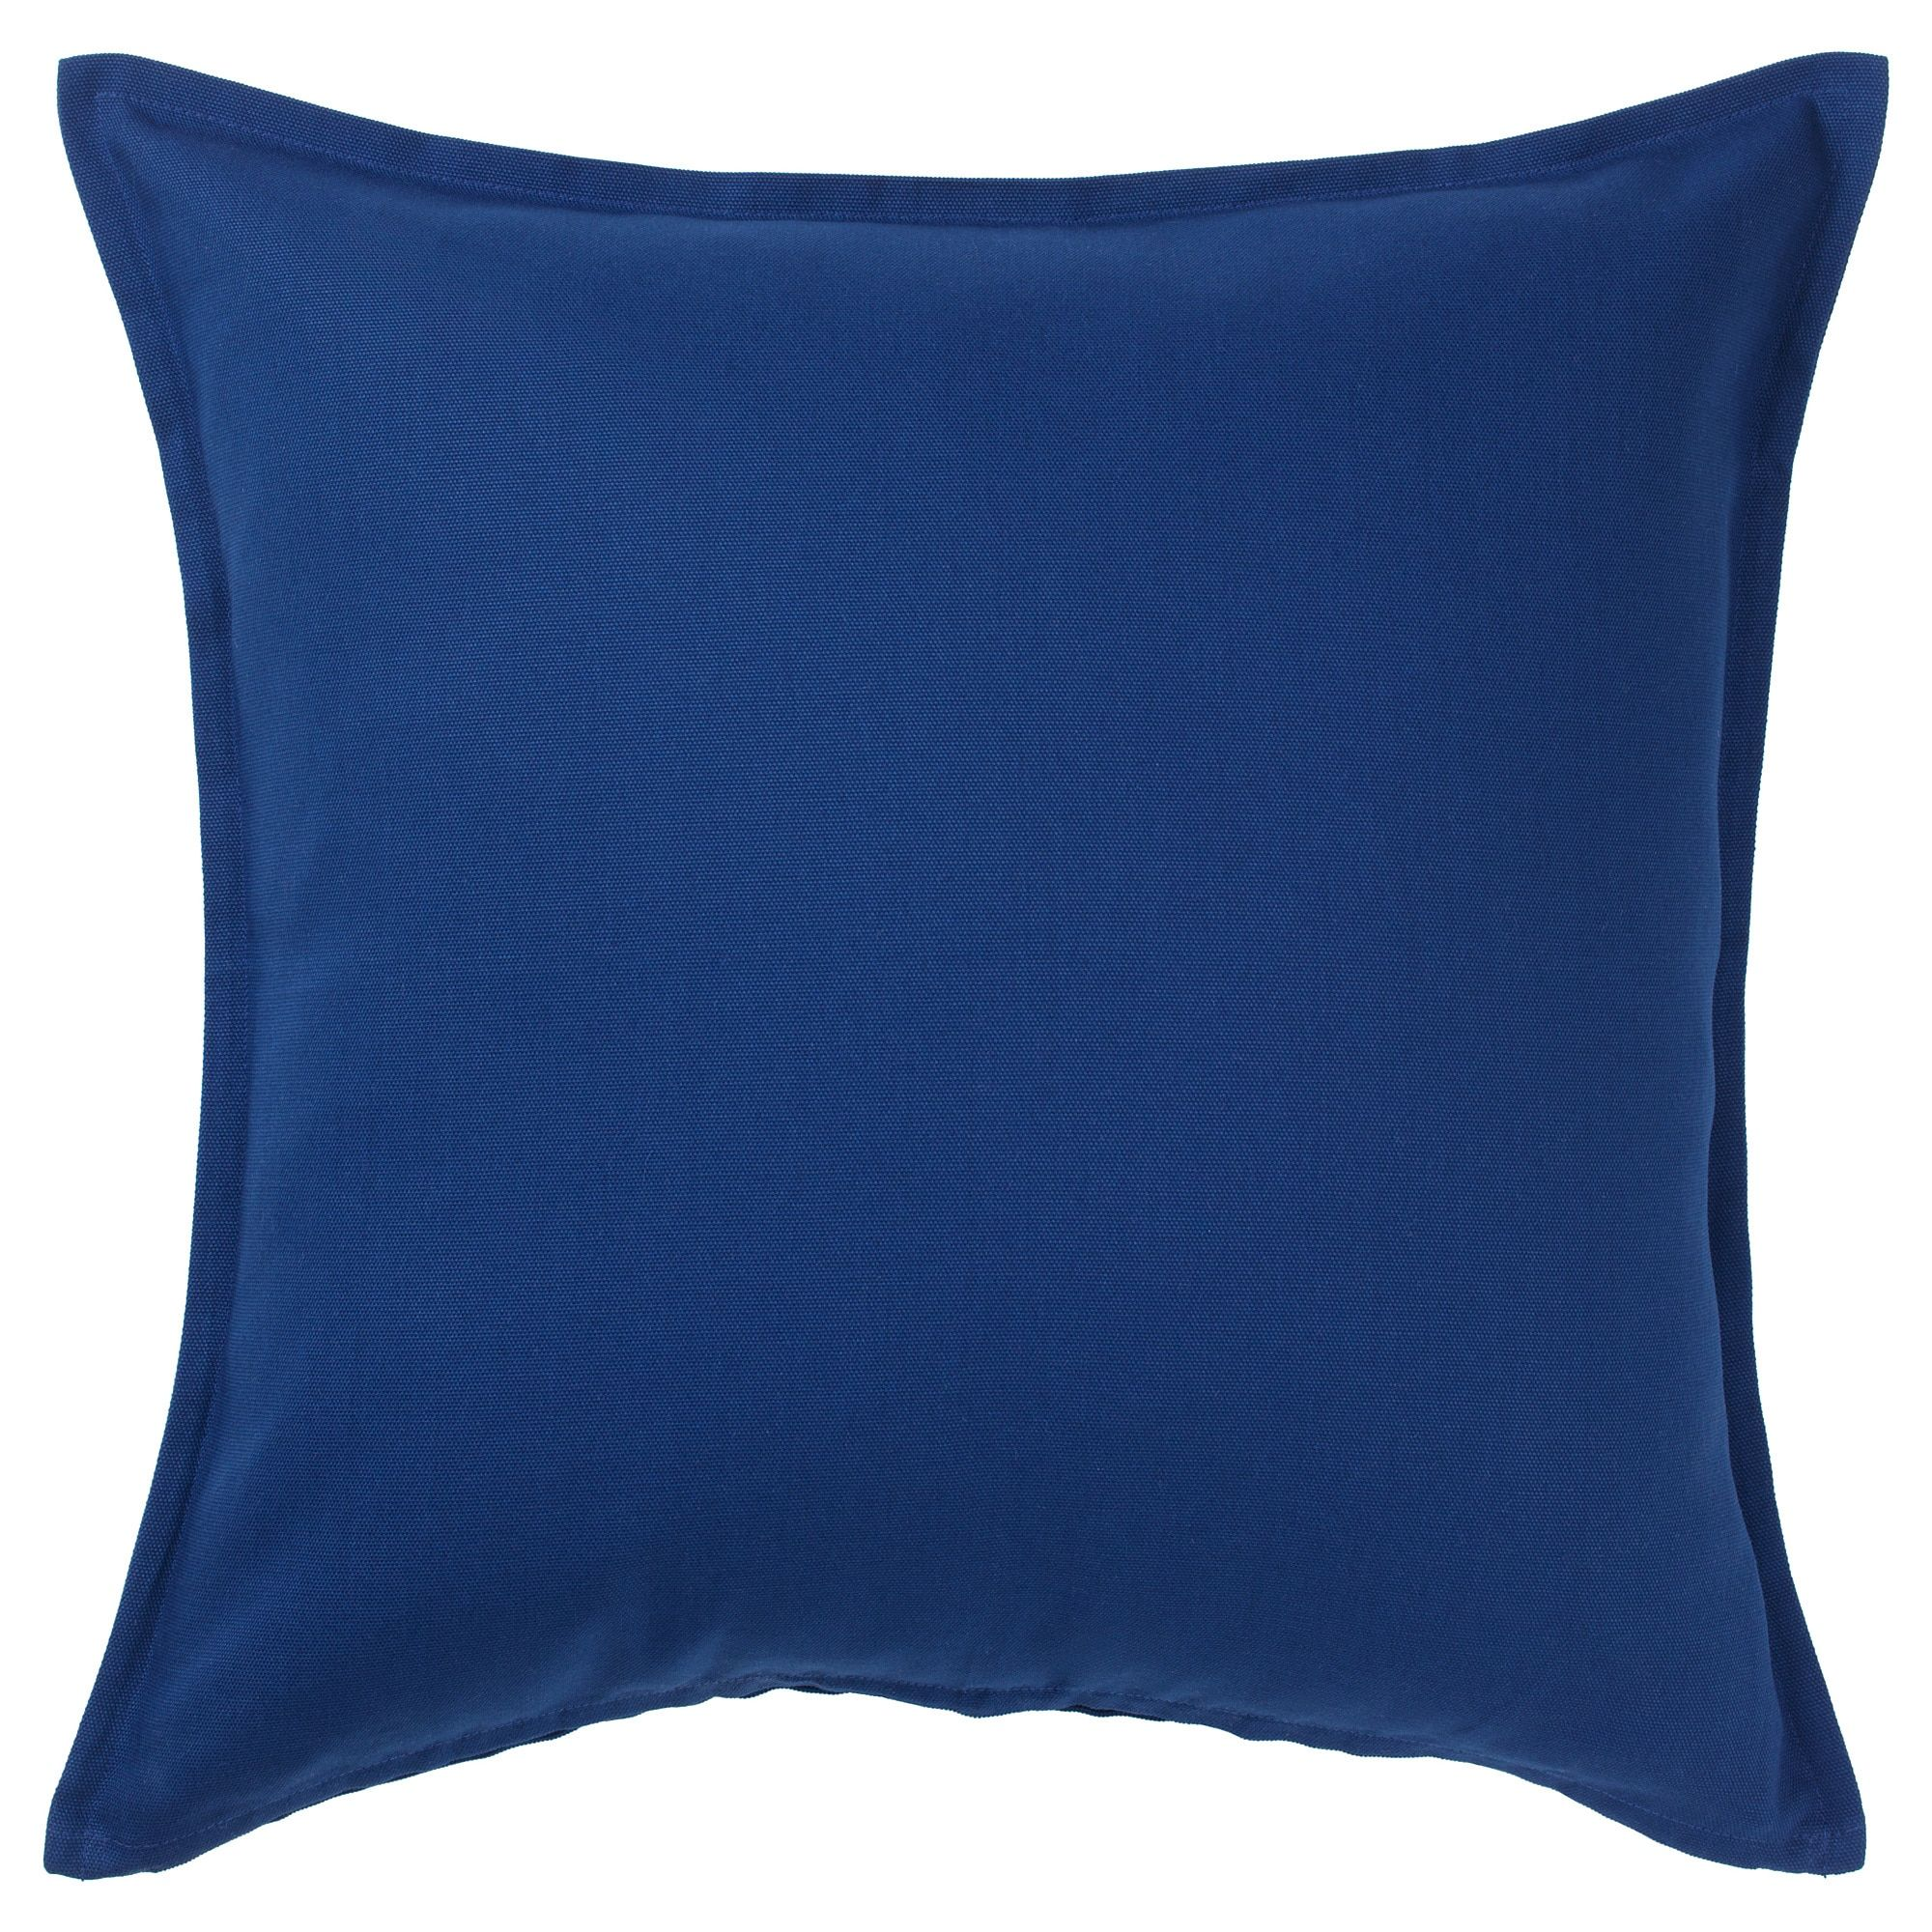 GURLI Cushion cover dark blue IKEA Cushions, Cushion